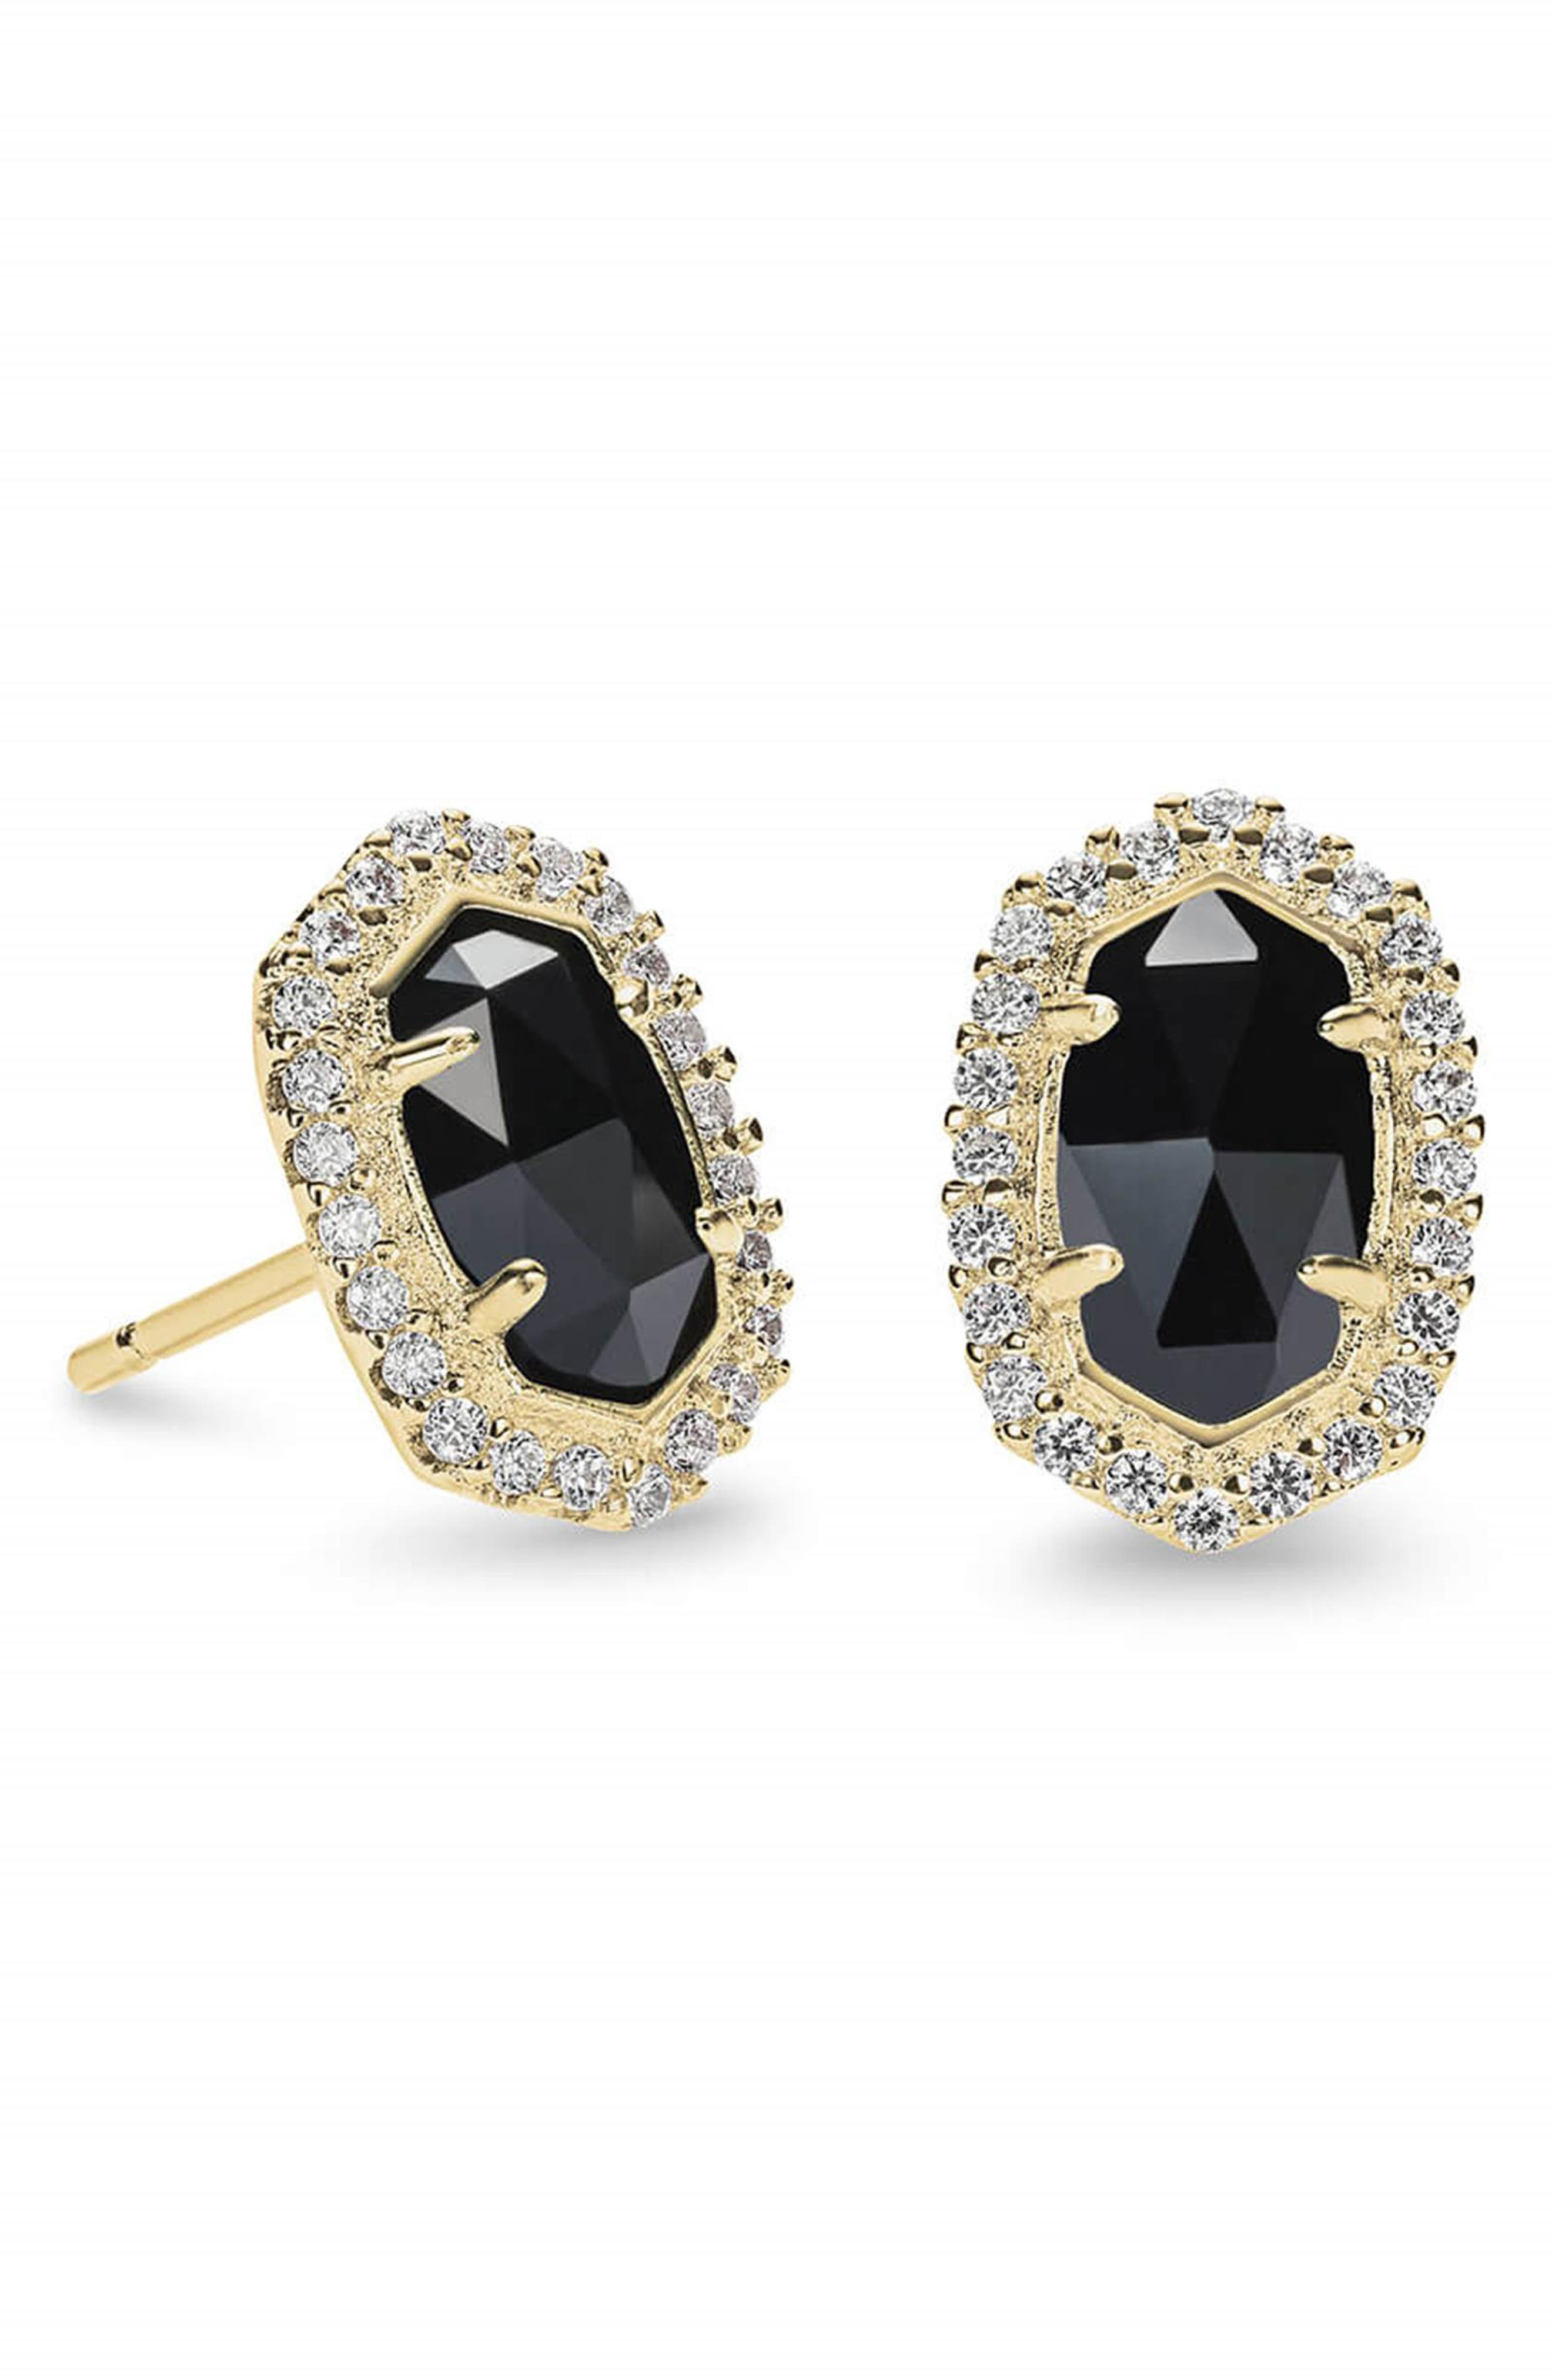 KENDRA SCOTT, 'Cade' Drusy Stud Earrings, Alternate thumbnail 3, color, 001